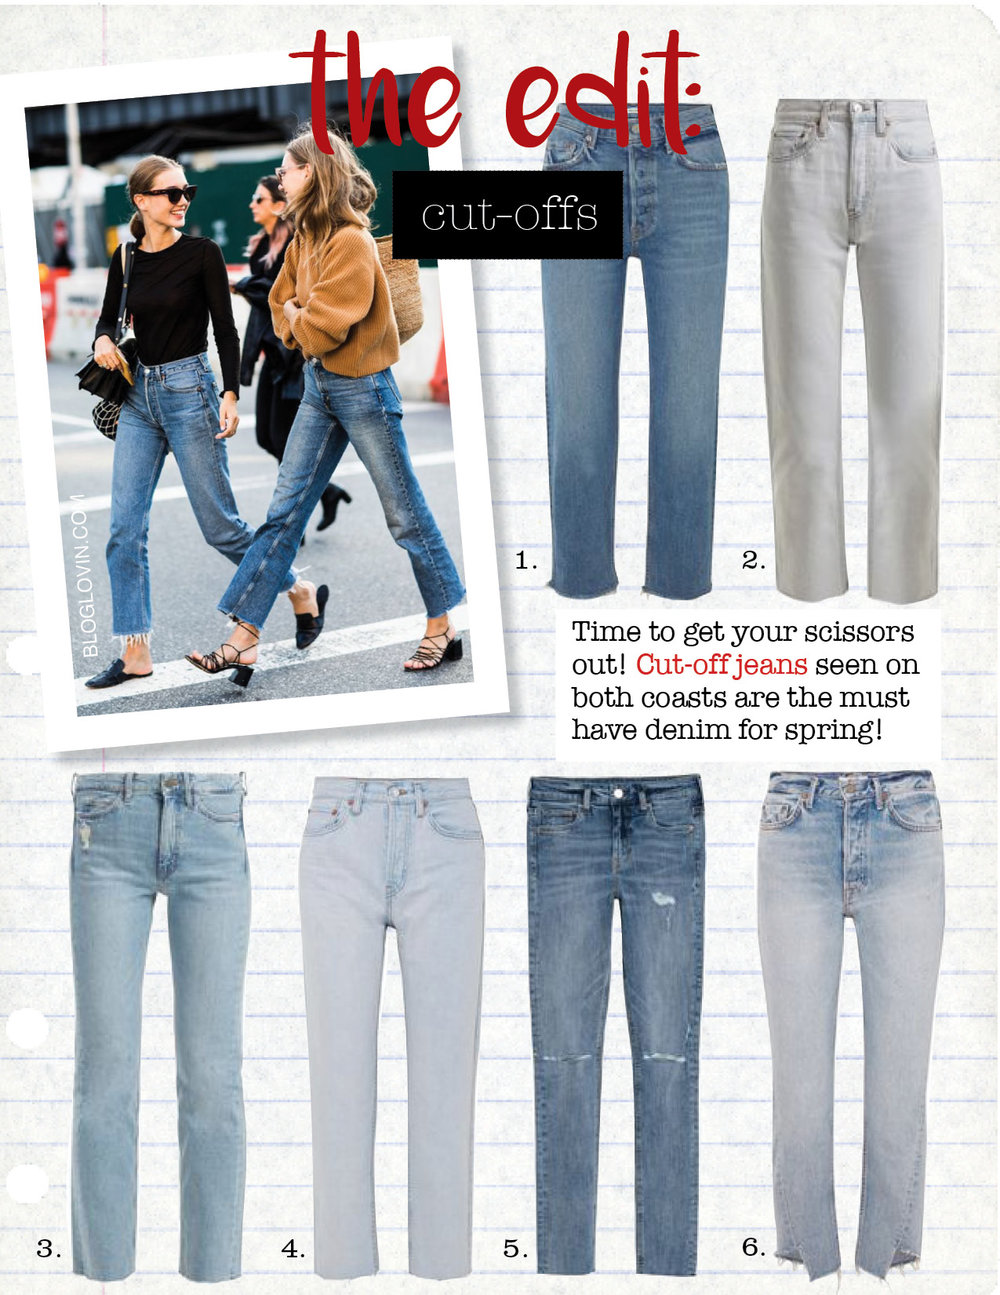 1. grlfrnd helena cropped distressed mid-rise straight-leg jeans, $230,  net-a-porter.com  2. re/done originals stove pipe high-rise straight-leg jeans, $348,  matchesfashion.com  3. m.i.h. jeans daily high-rise slim-leg jeans, $277,  matchesfashion.com  4. re/done high-rise stove pipe straight-leg jeans, $277,  net-a-porter.com  5. h&m skinny regular jeans, $29,  hm.com  6. grlfrnd carmen frayed mid-rise straight-leg jeans, $210,  net-a-porter.com